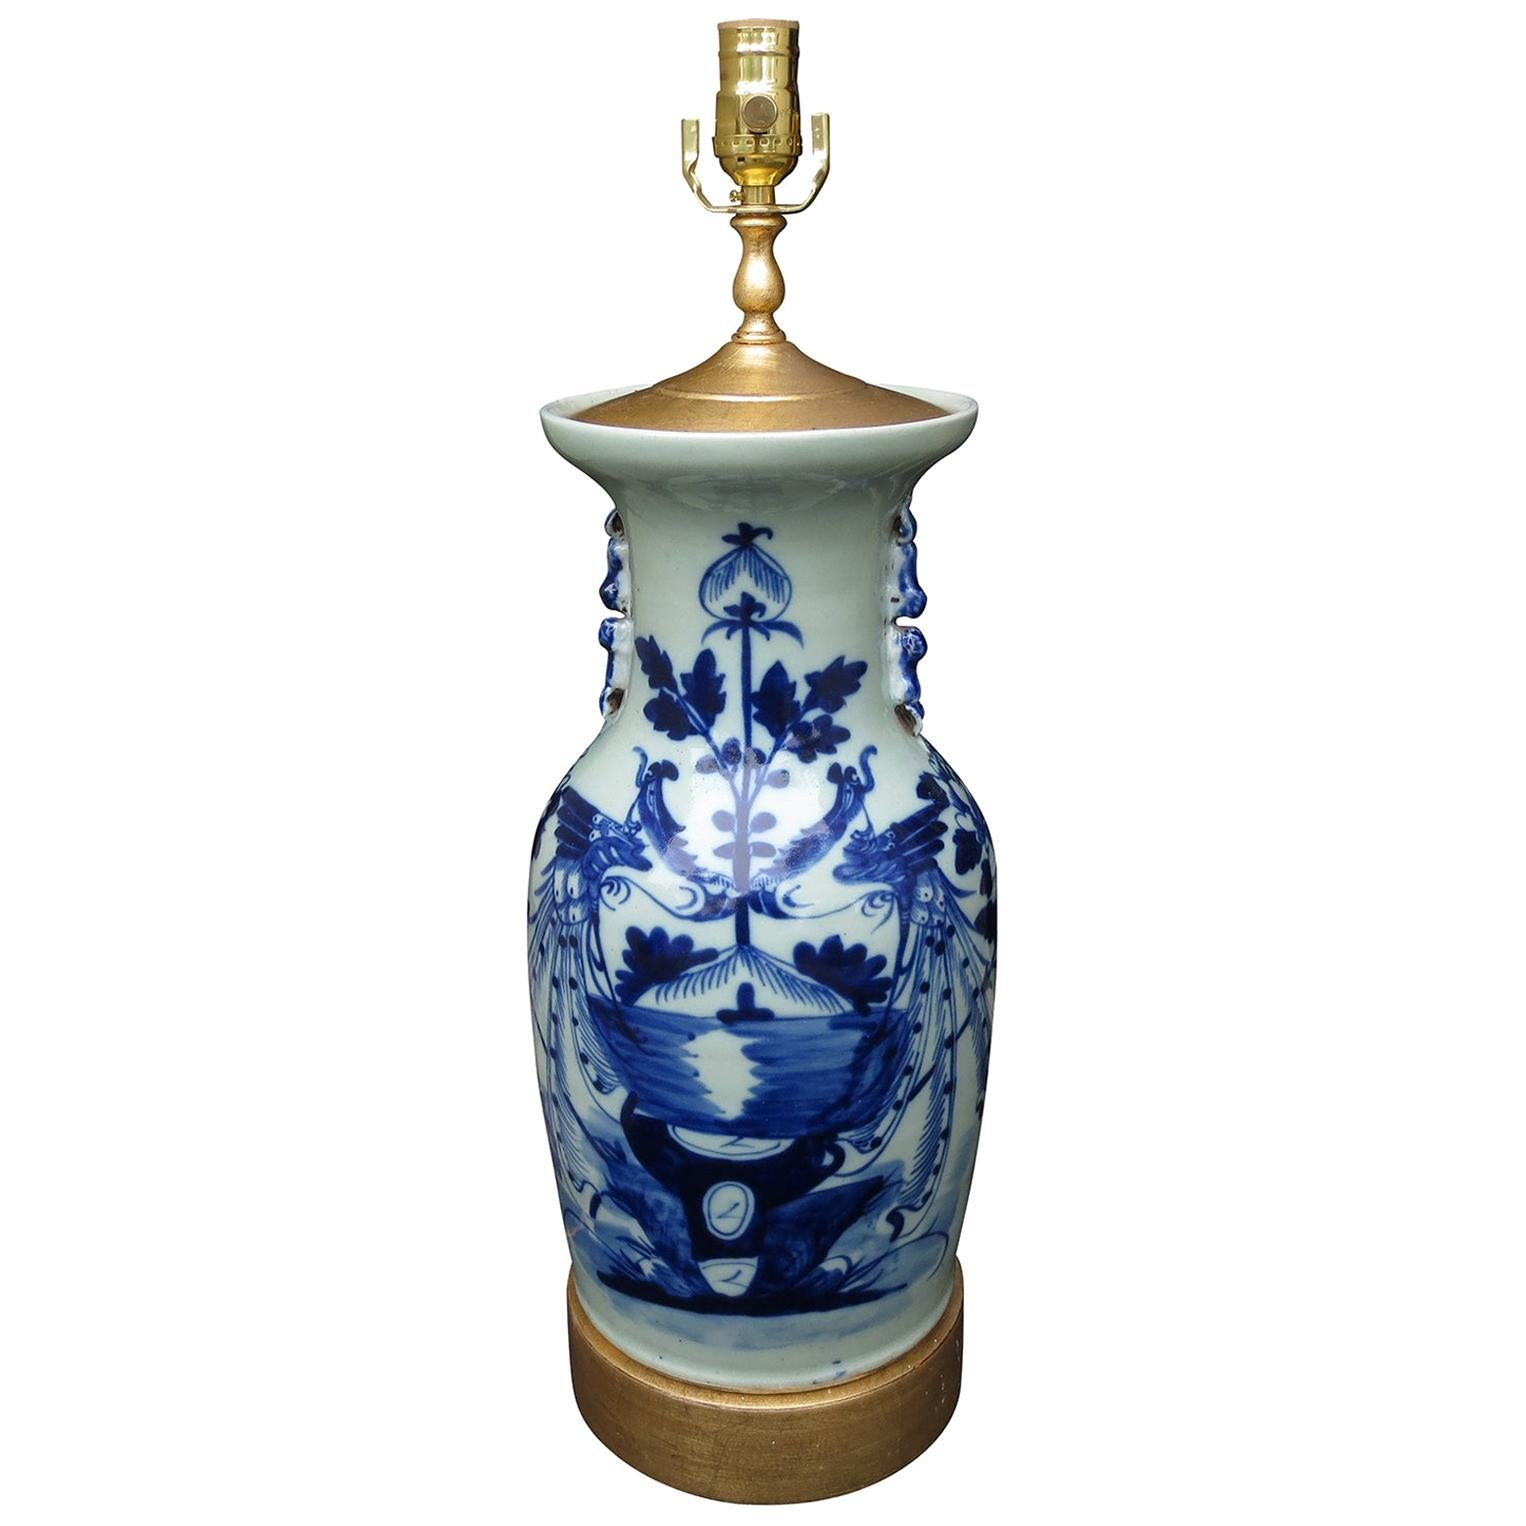 19th Century Chinese Blue and White Porcelain Lamp